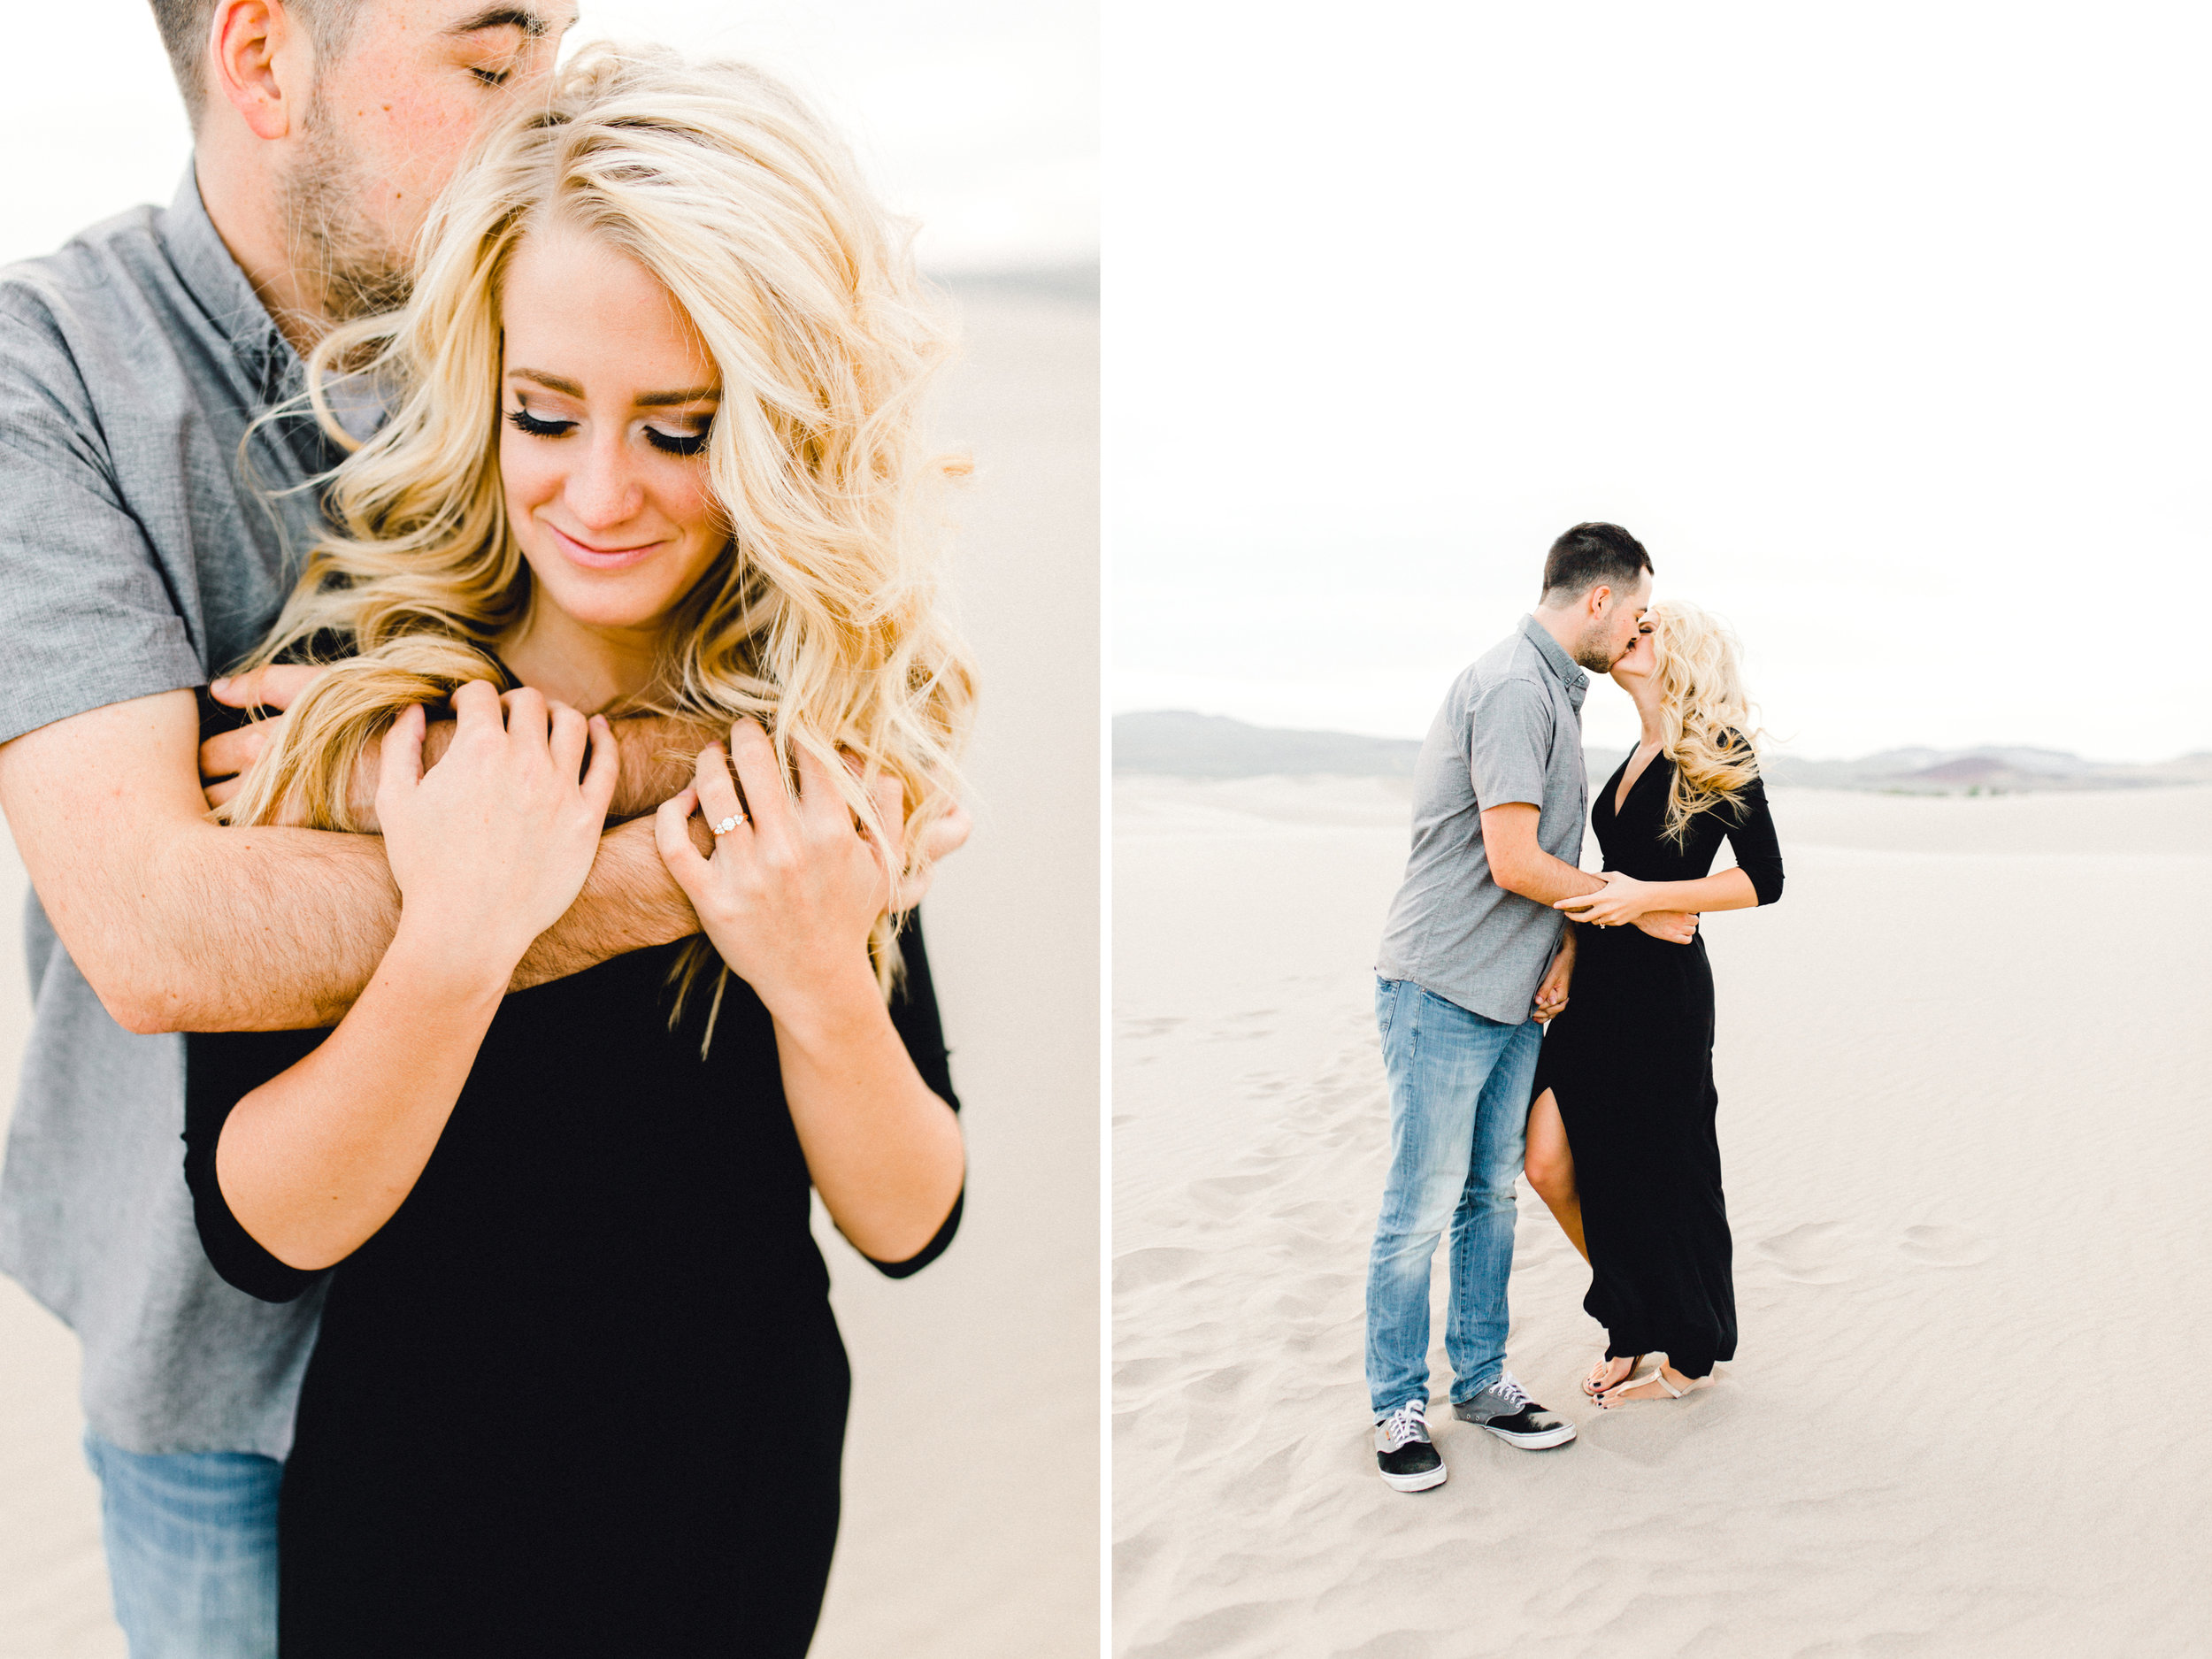 rexburg-idaho-sand-dunes-engagement-photographer-august-trevor5.jpg